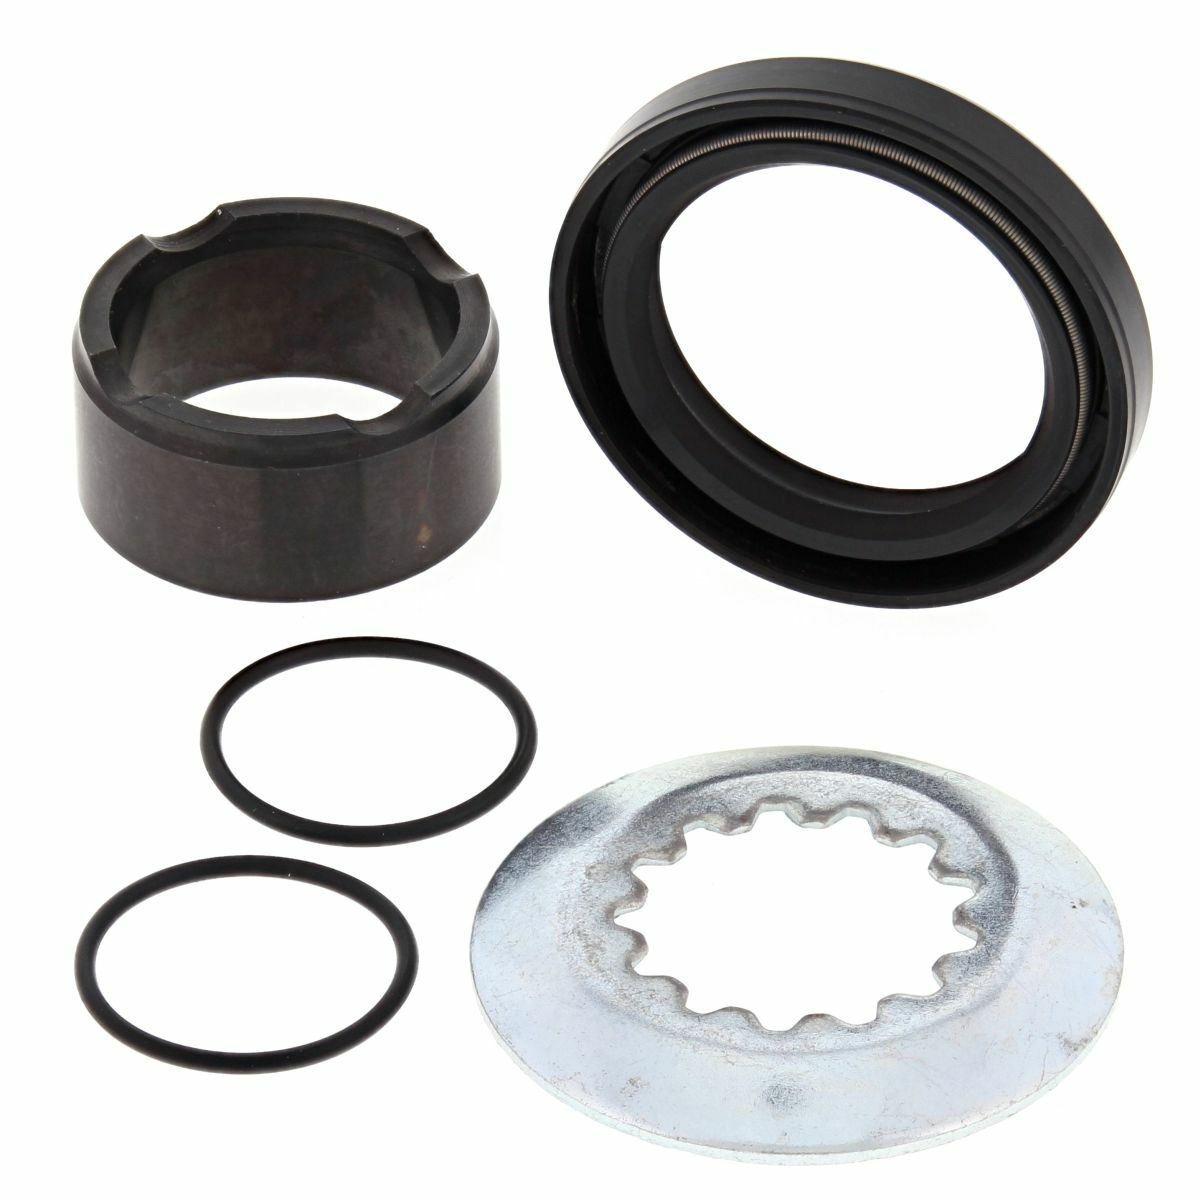 Obrázek produktu Counter shaft Seal Kit All Balls Racing 25-4037